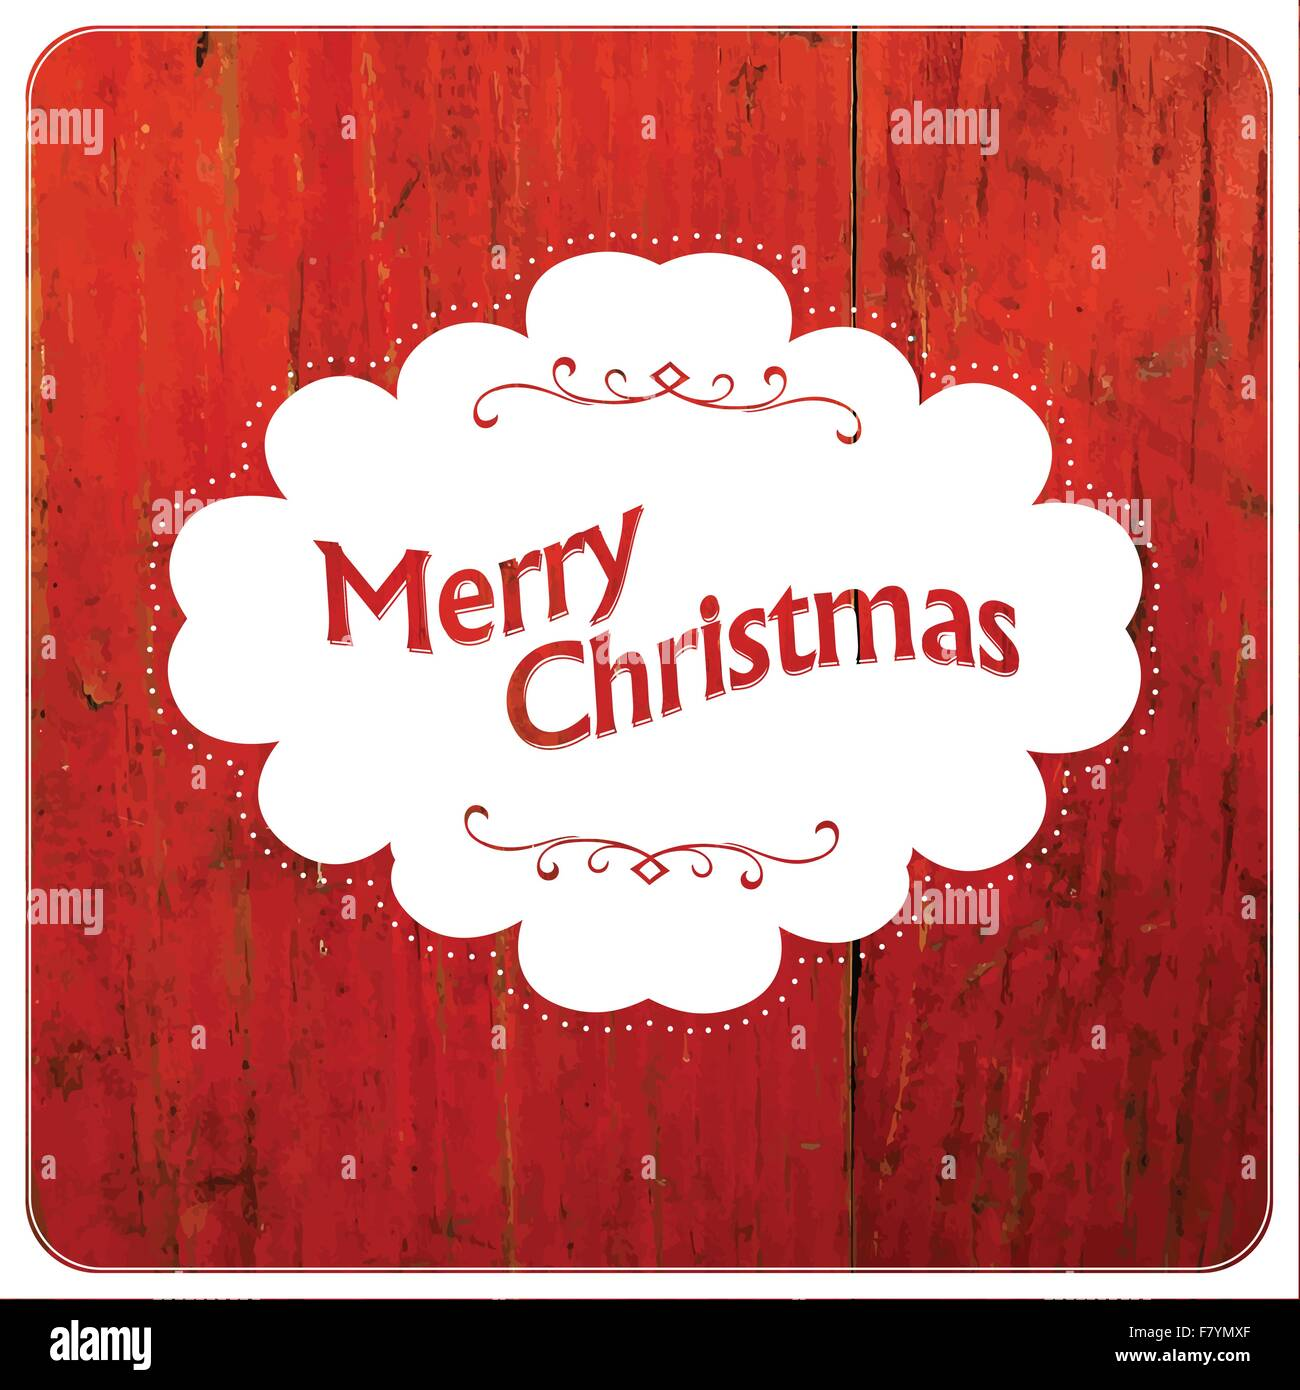 Merry Christmas VIntage Design On Red Planks. Vector - Stock Image